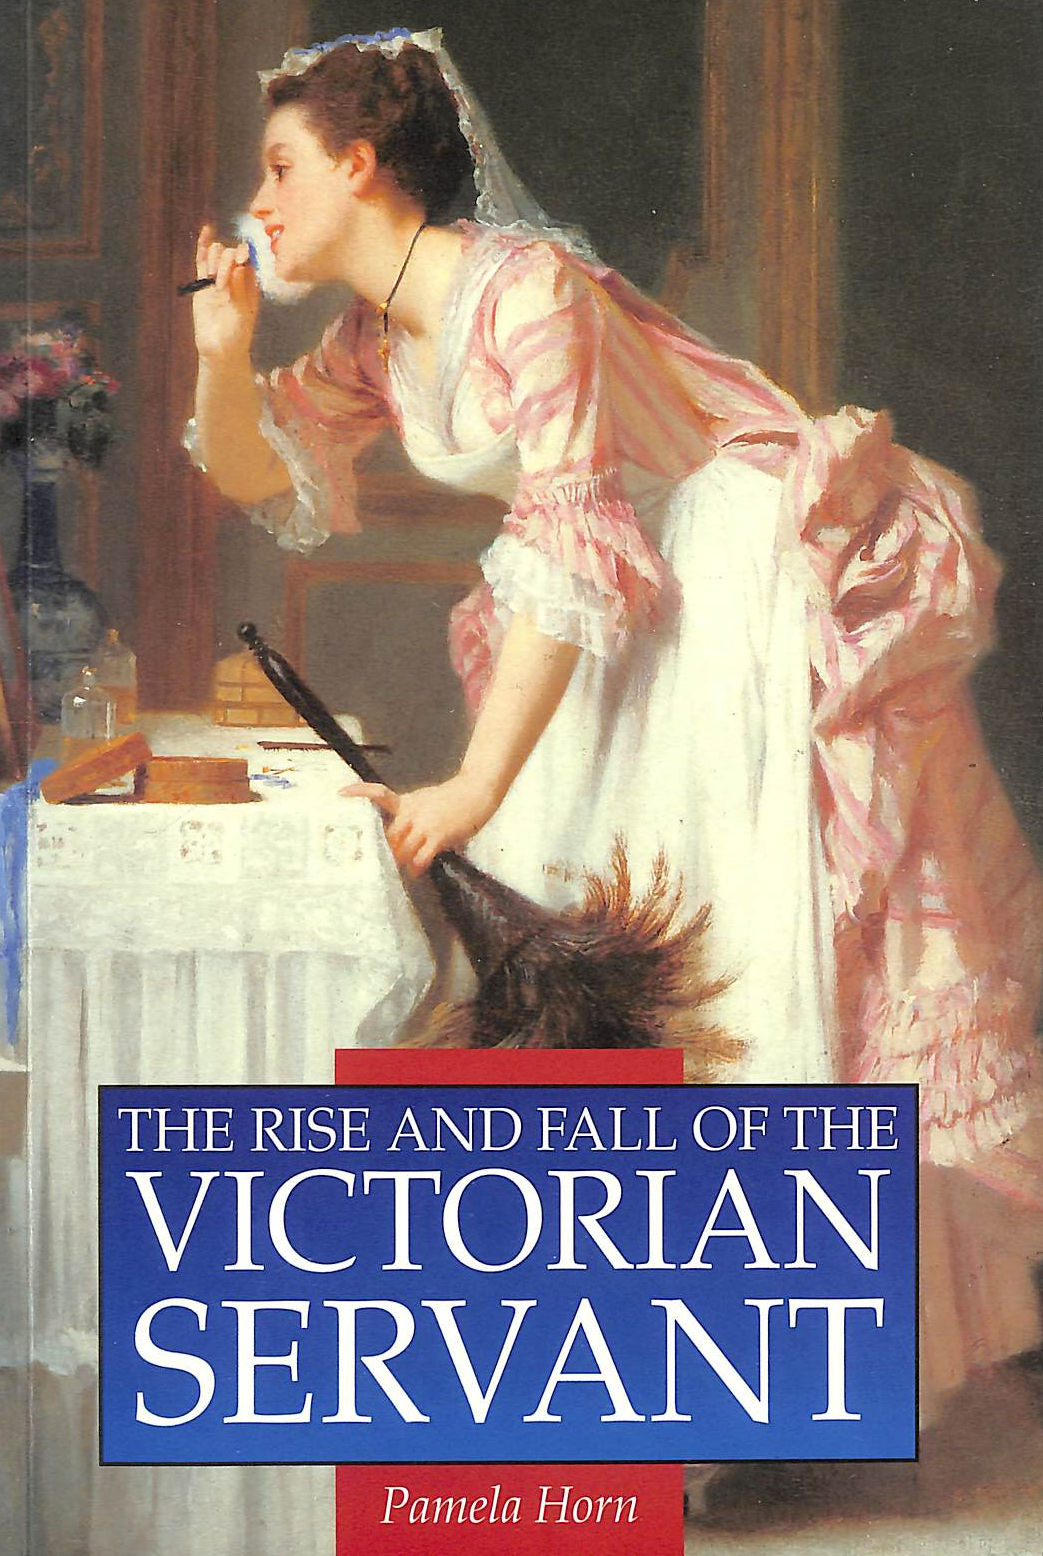 Image for The Rise and Fall of the Victorian Servant (Illustrated History Paperbacks)